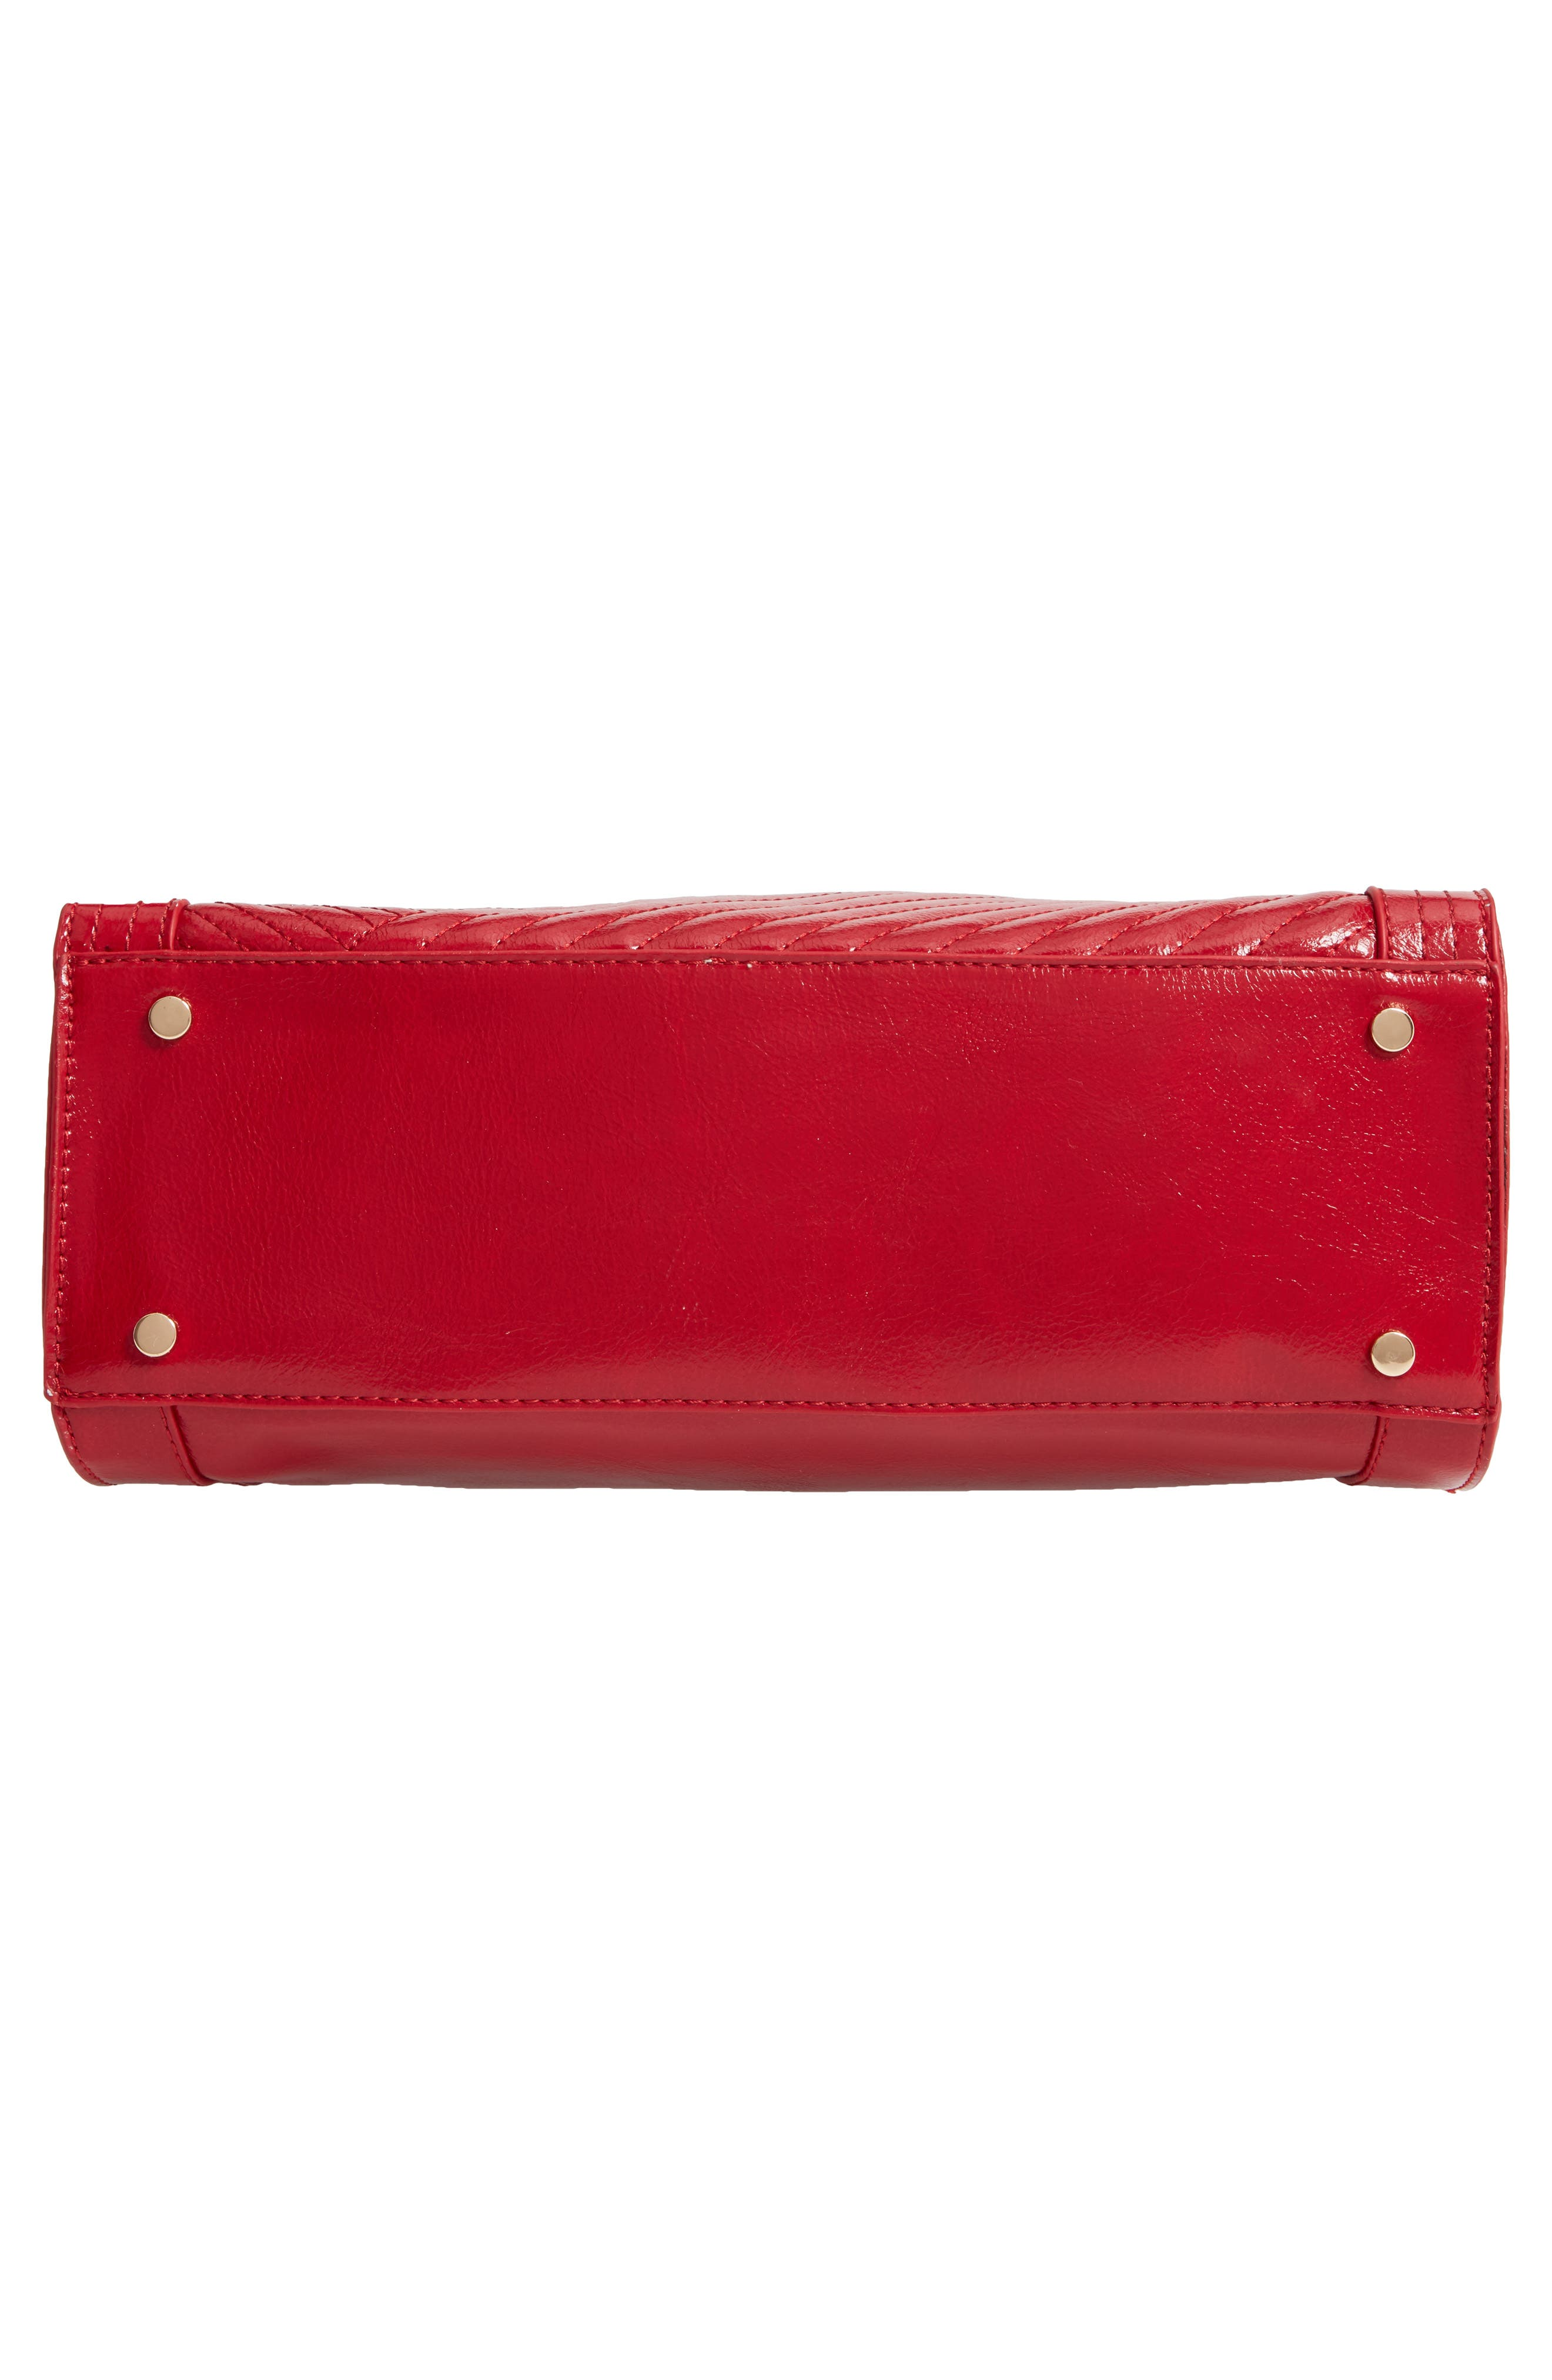 SOLE SOCIETY, Aisln Faux Leather Satchel, Alternate thumbnail 6, color, RED